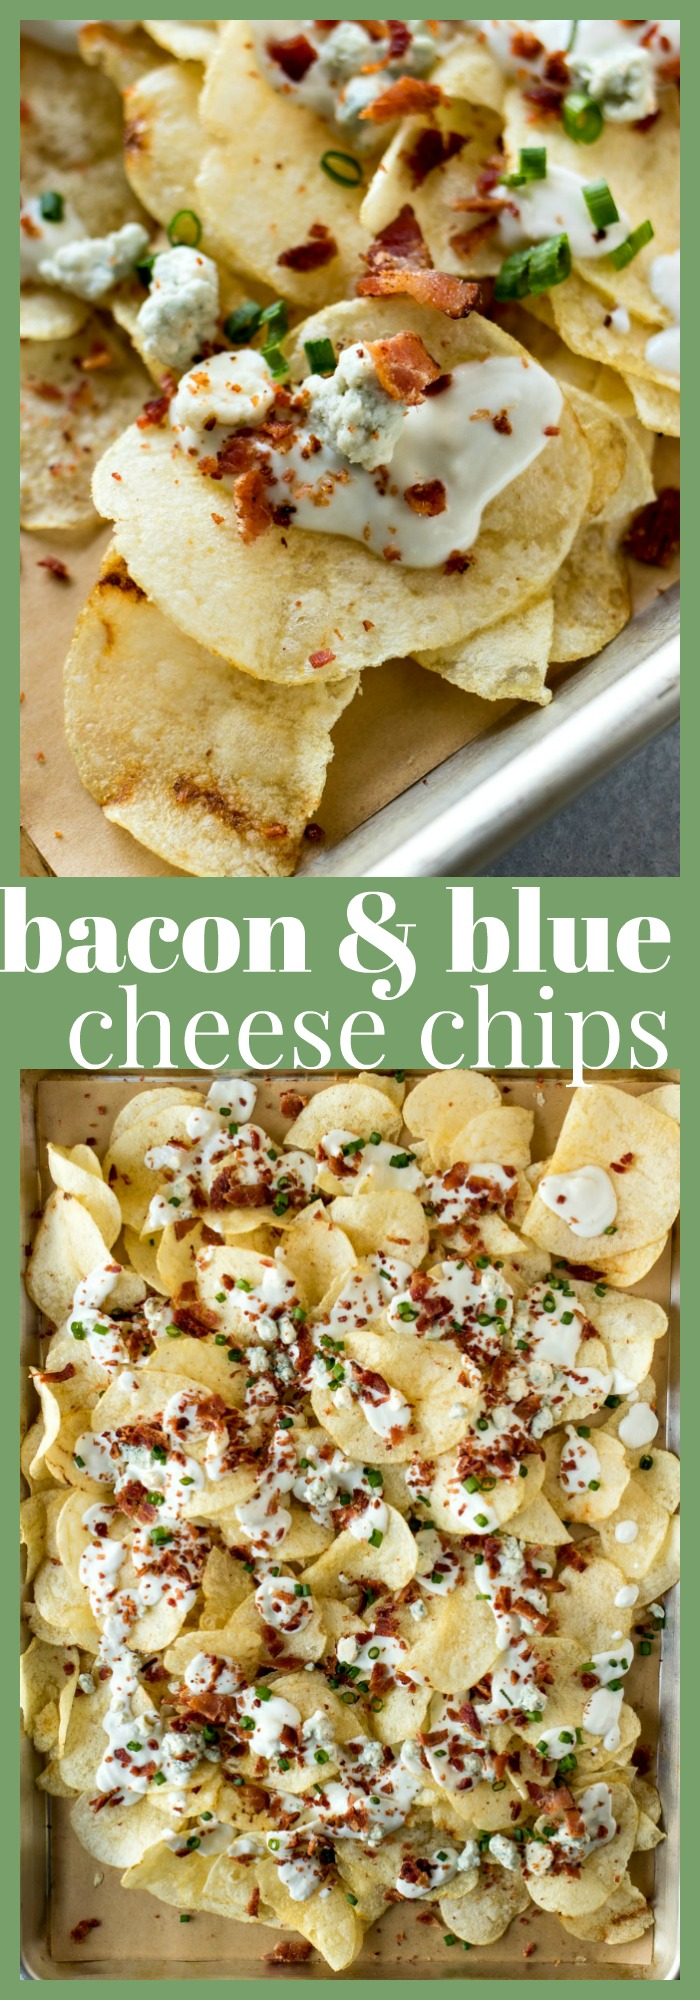 Bacon Blue Cheese Chips photo collage